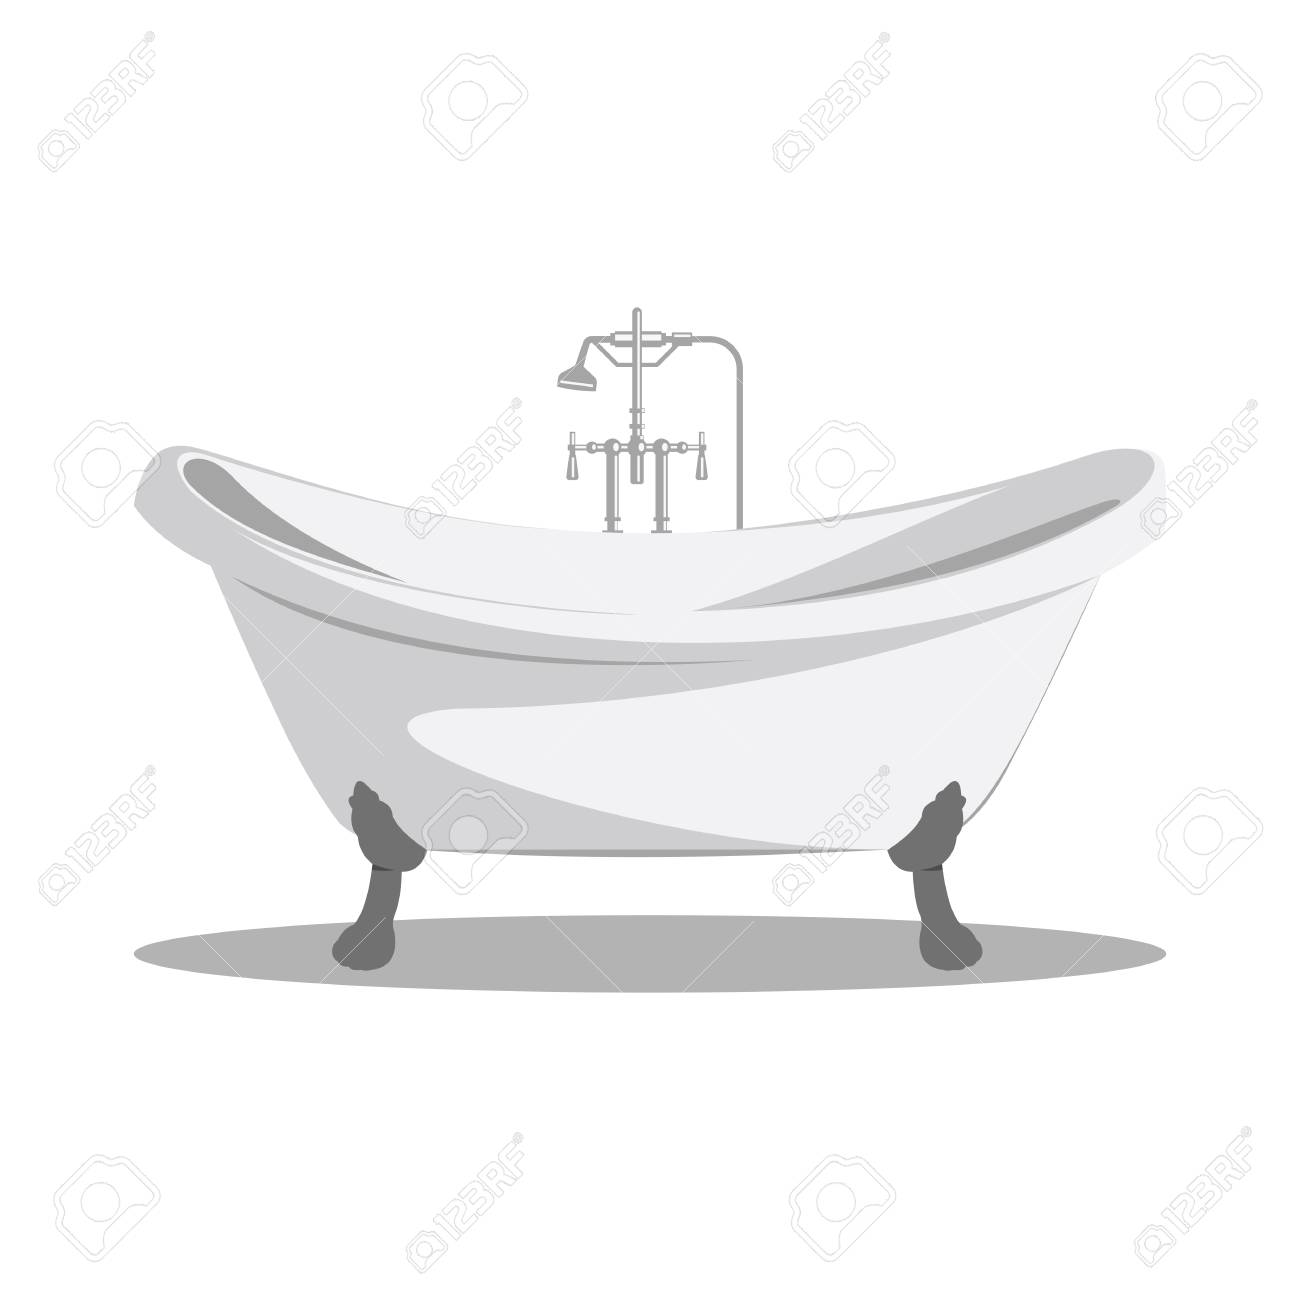 Cartoon Retro Bathtub Icon White With Arms And Legs And Shadow